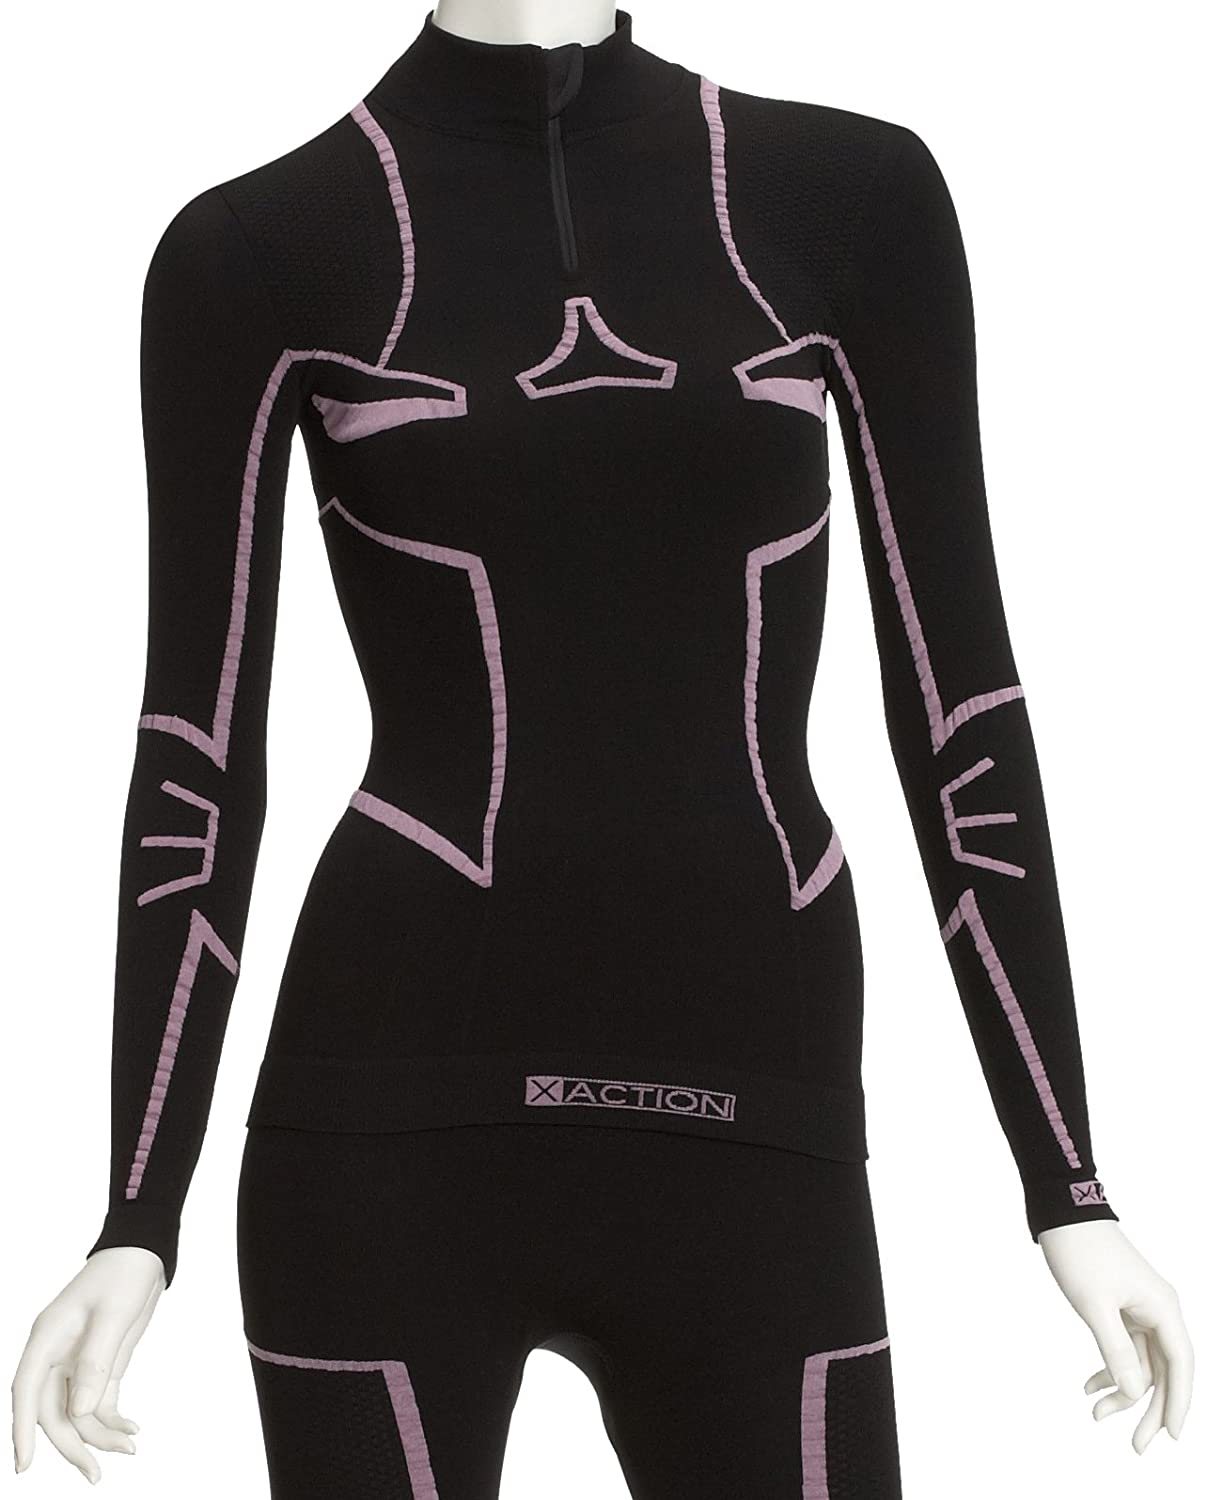 X-Action Damen Funktionswear Longsleeve Gold bestellen